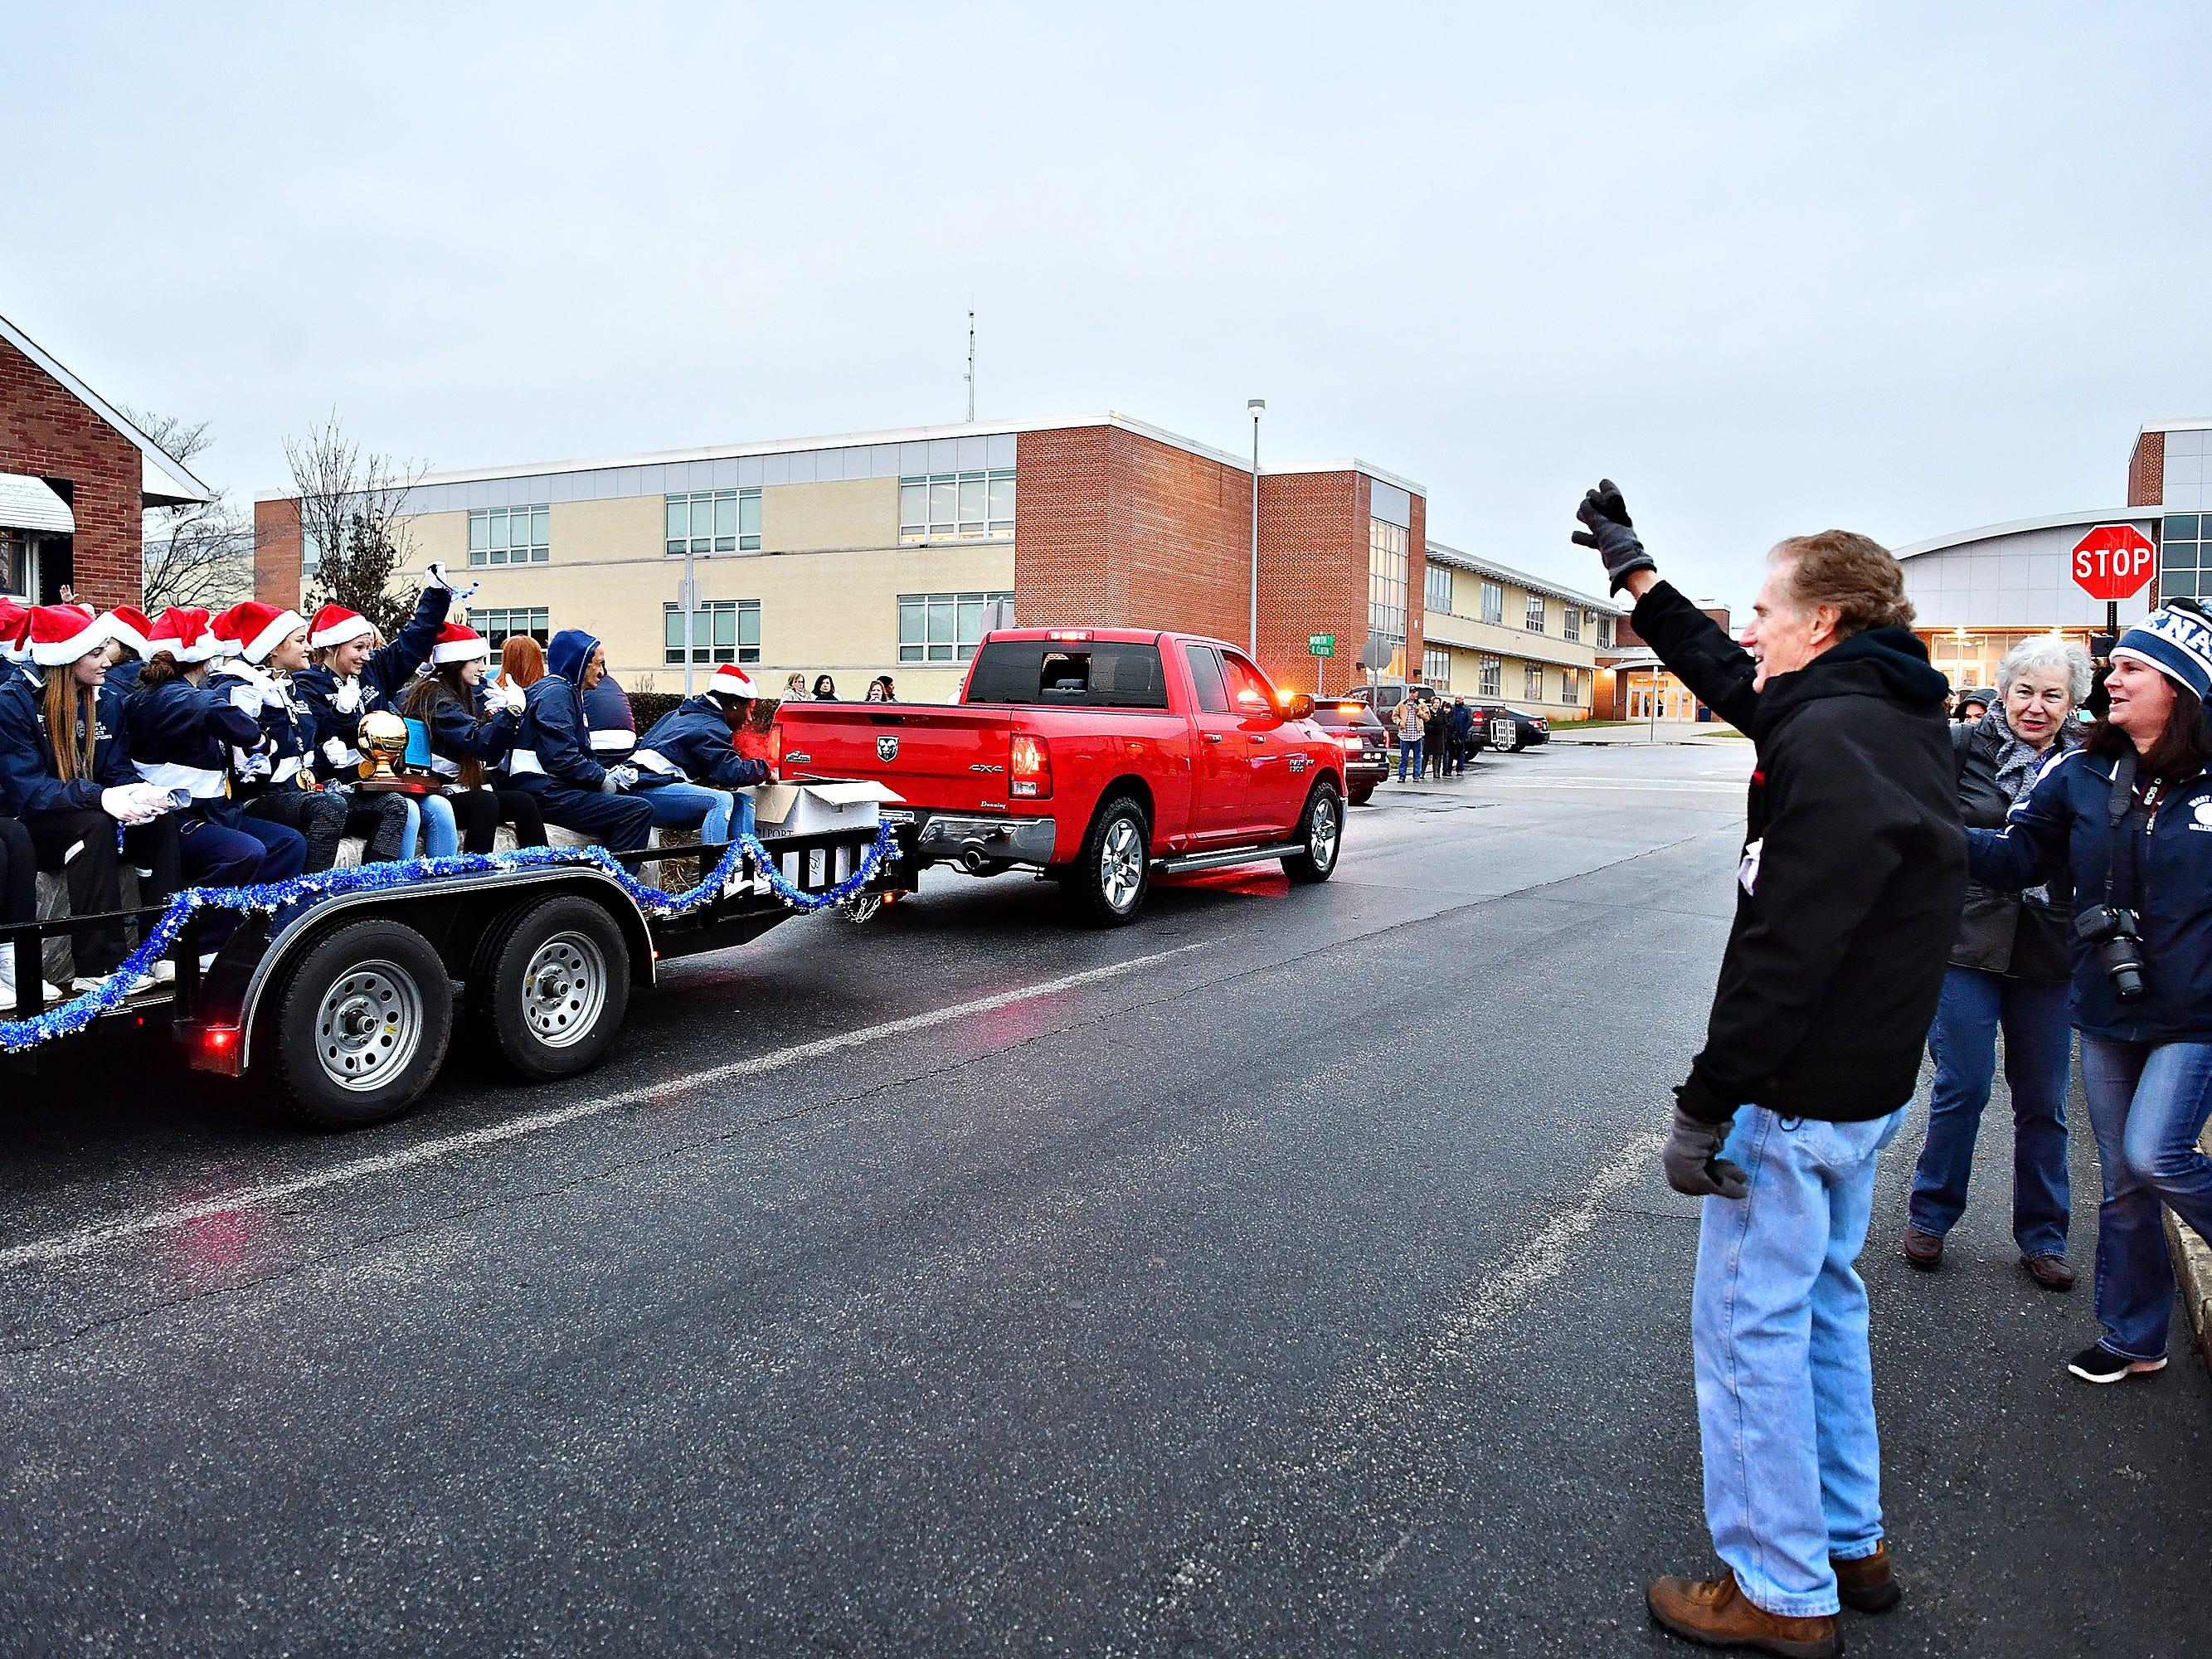 The 2018 PIAA 3-A State Champion Lady Bulldogs Volleyball team are honored with a parade at West York Area High School in West Manchester Township, Friday, Nov. 30, 2018. Dawn J. Sagert photo